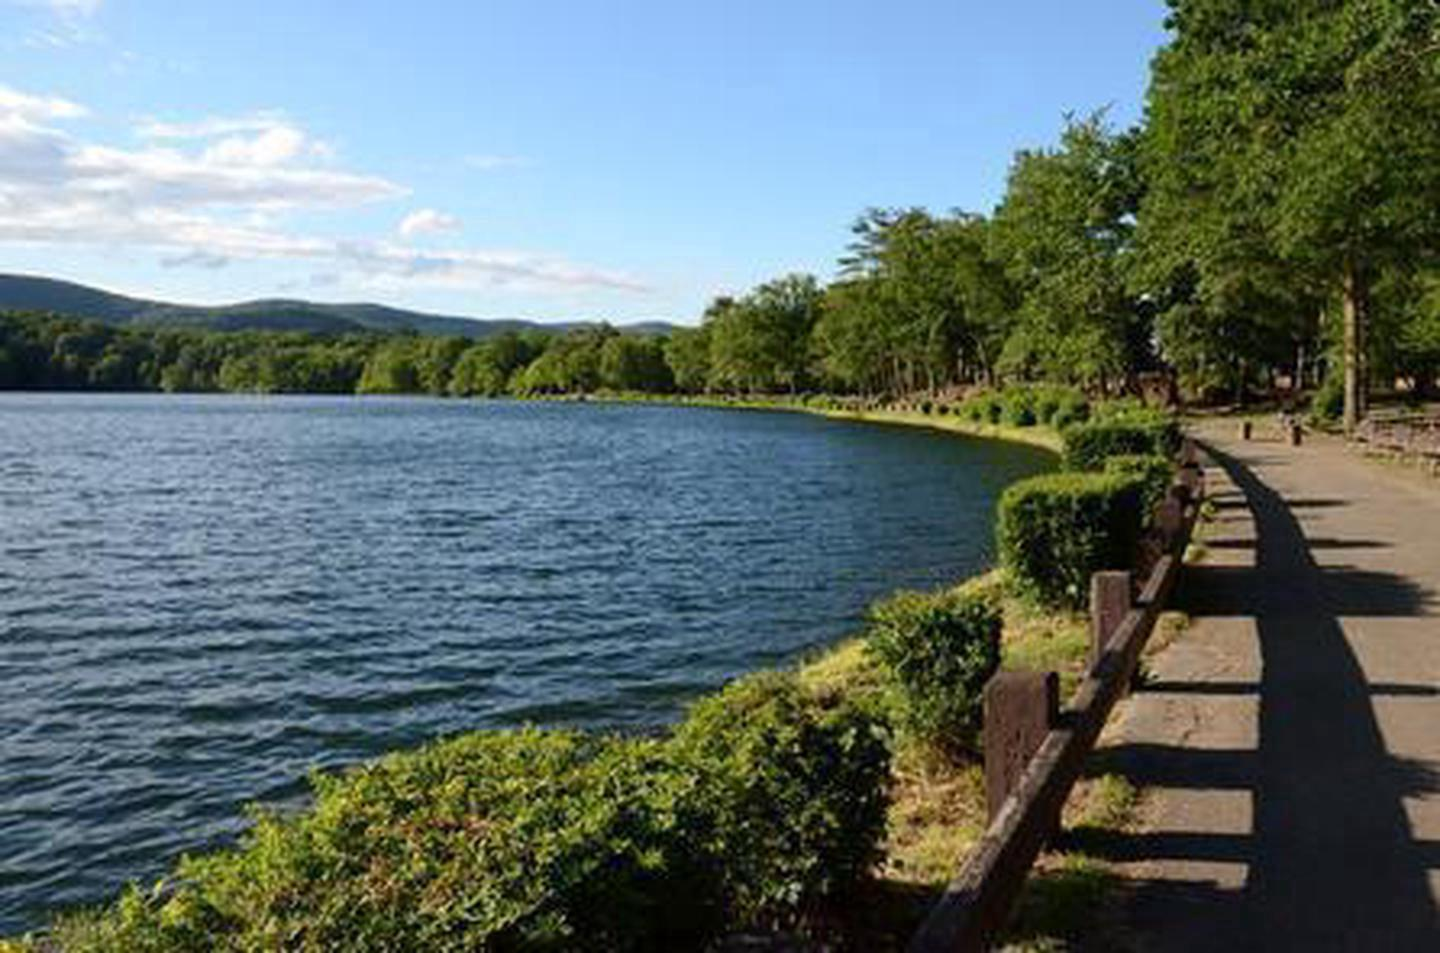 Bear Mountain Lake Amenities at the Bear Mountain Inn include boat rentals, nature trails, playing fields and more.